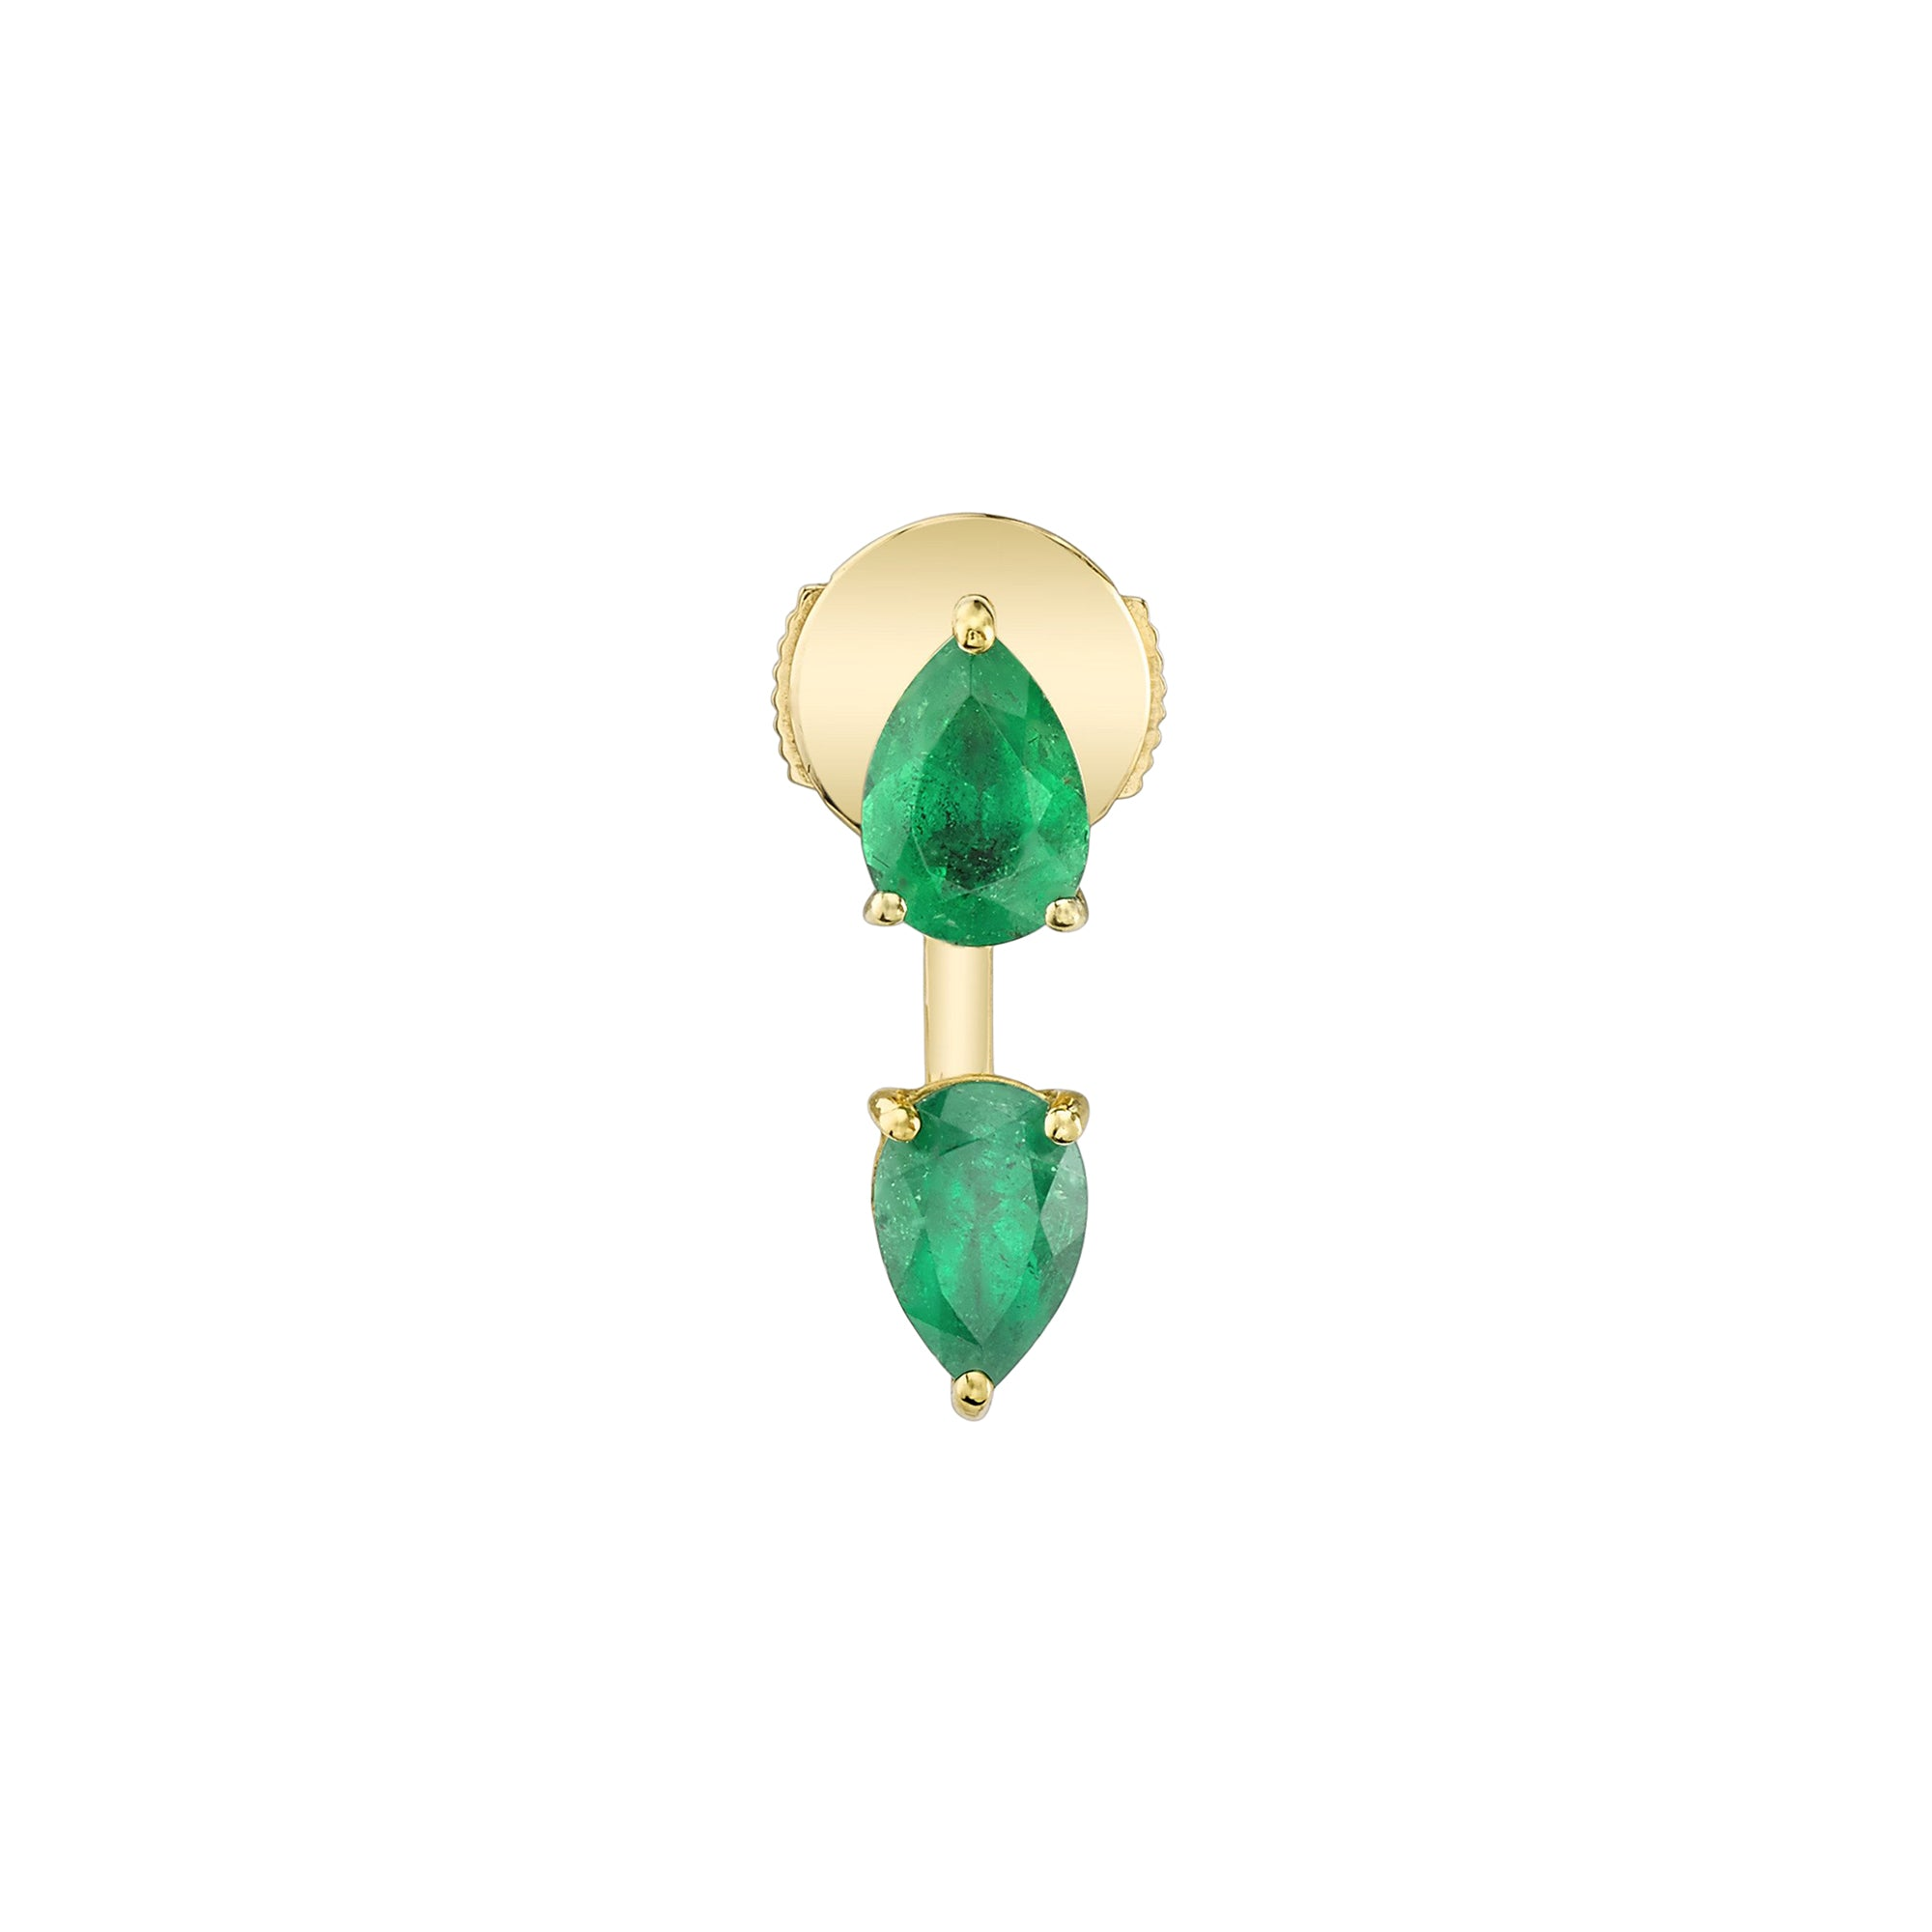 Gold & Emerald Pear Orbit Earring by Anita Ko for Broken English Jewelry